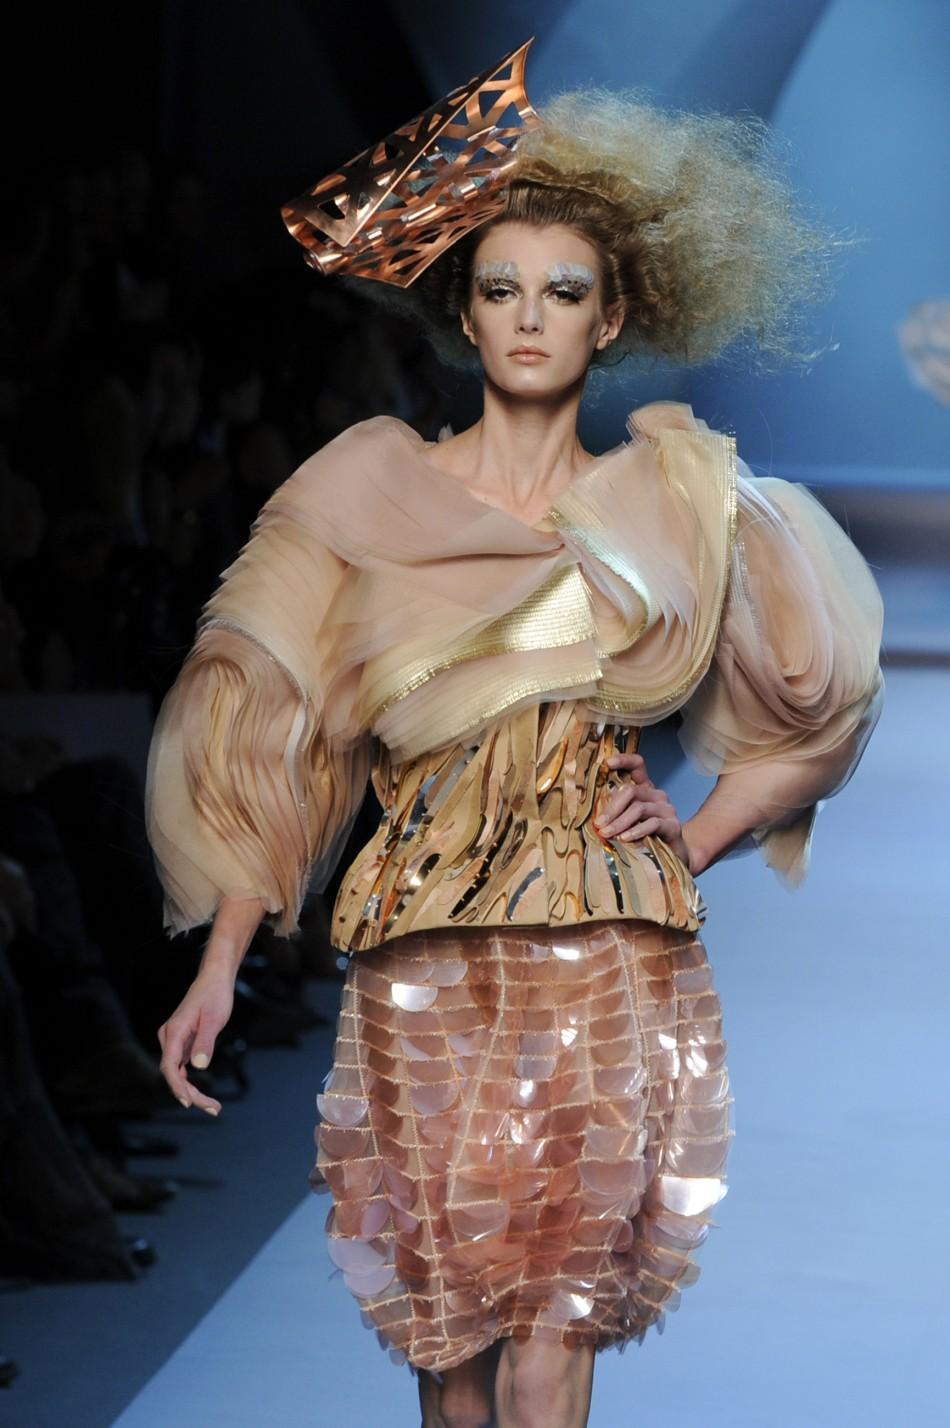 Haute Couture Fall-Winter 2011/2012 fashion show in Paris